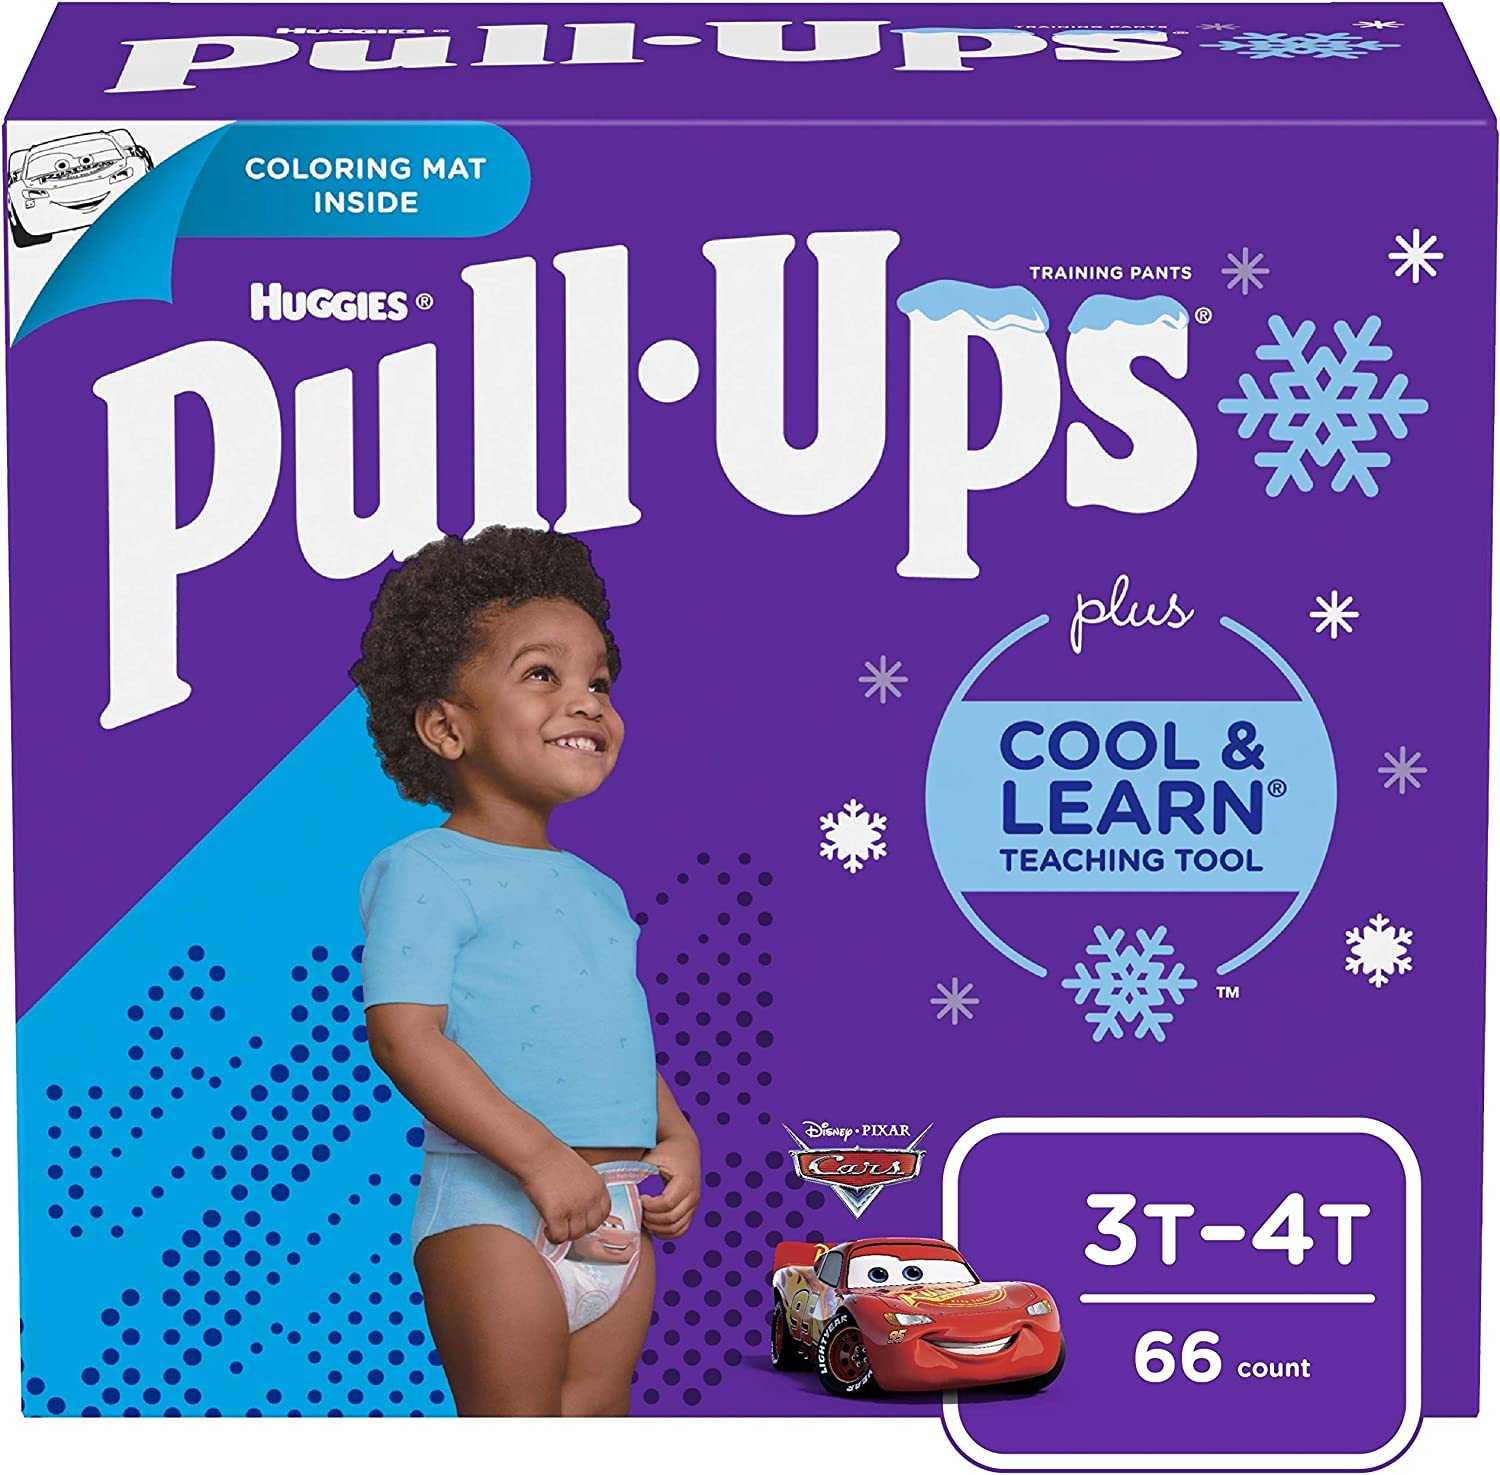 Pull-Ups Cool & Learn Boys' Training Pants, 3T-4T, 66 Ct (Packaging May Vary), Blue